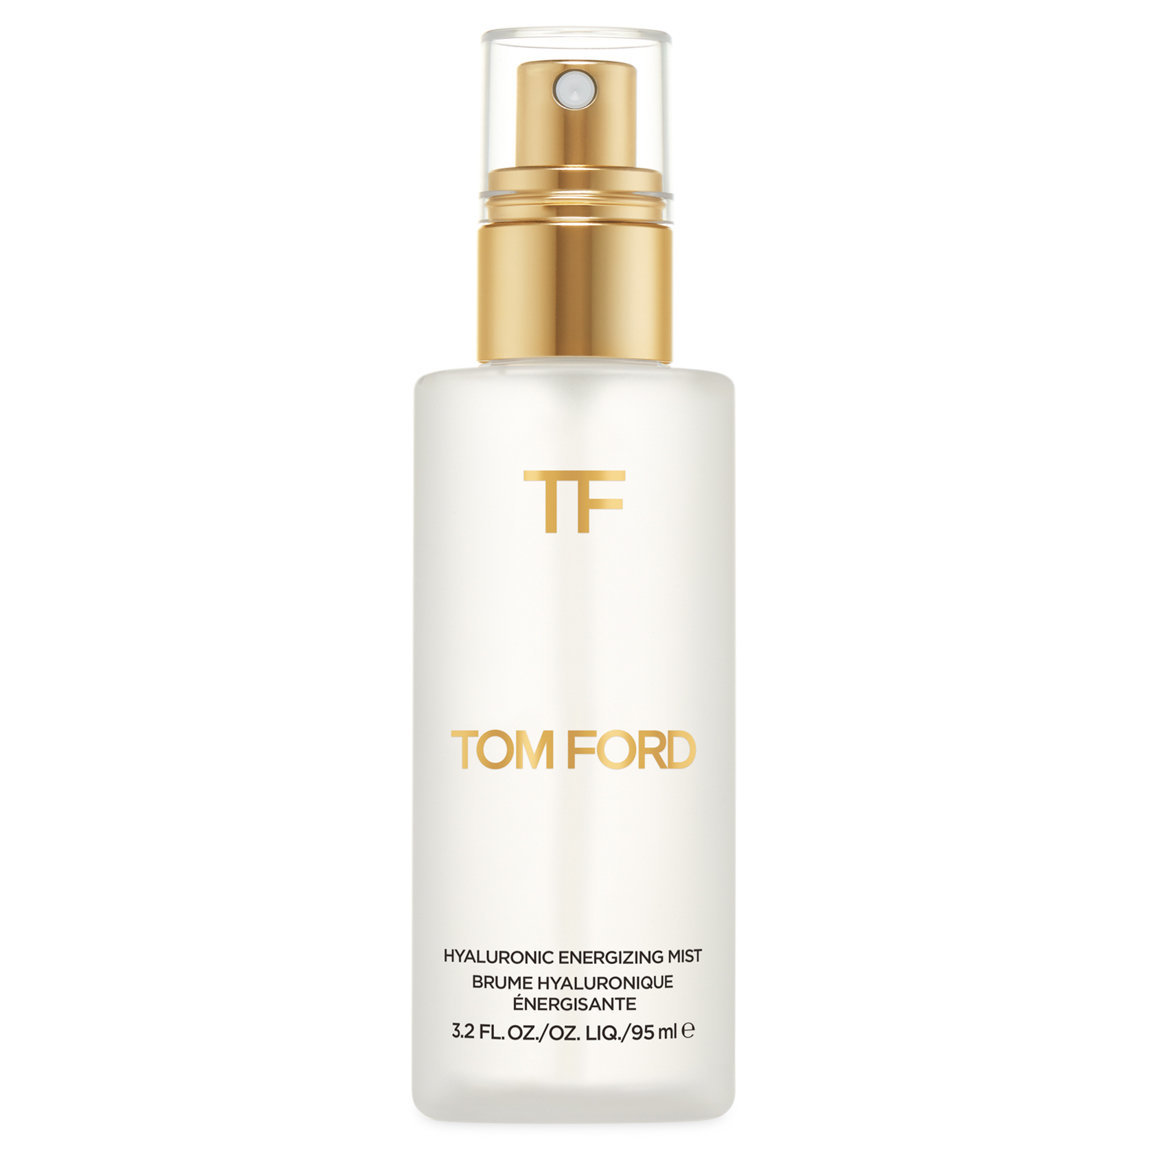 TOM FORD Hyaluronic Energizing Mist alternative view 1 - product swatch.